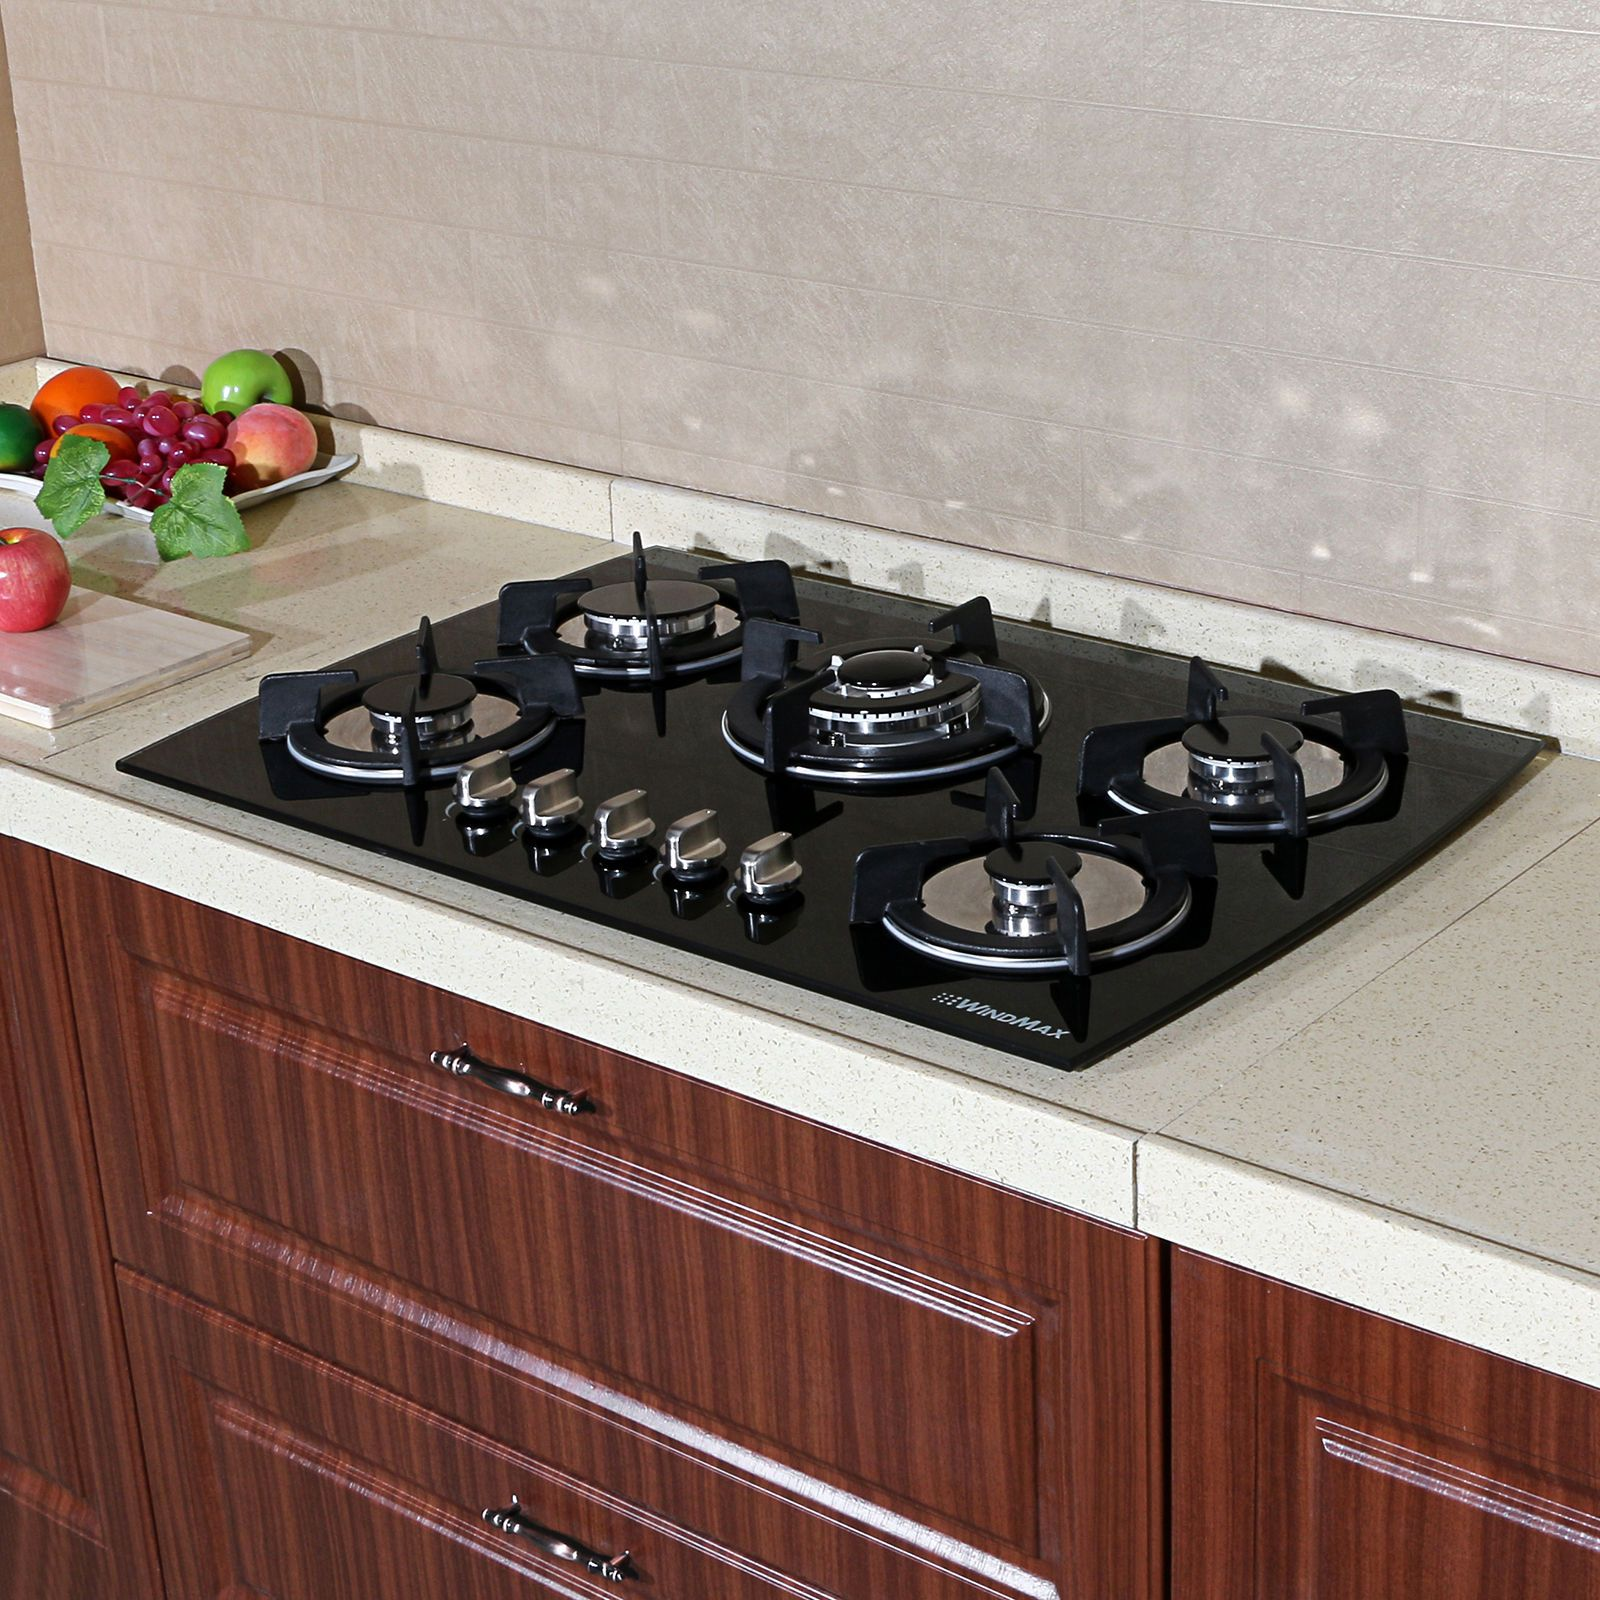 kitchen countertop range kutskokitchen gas cooktop with island brown